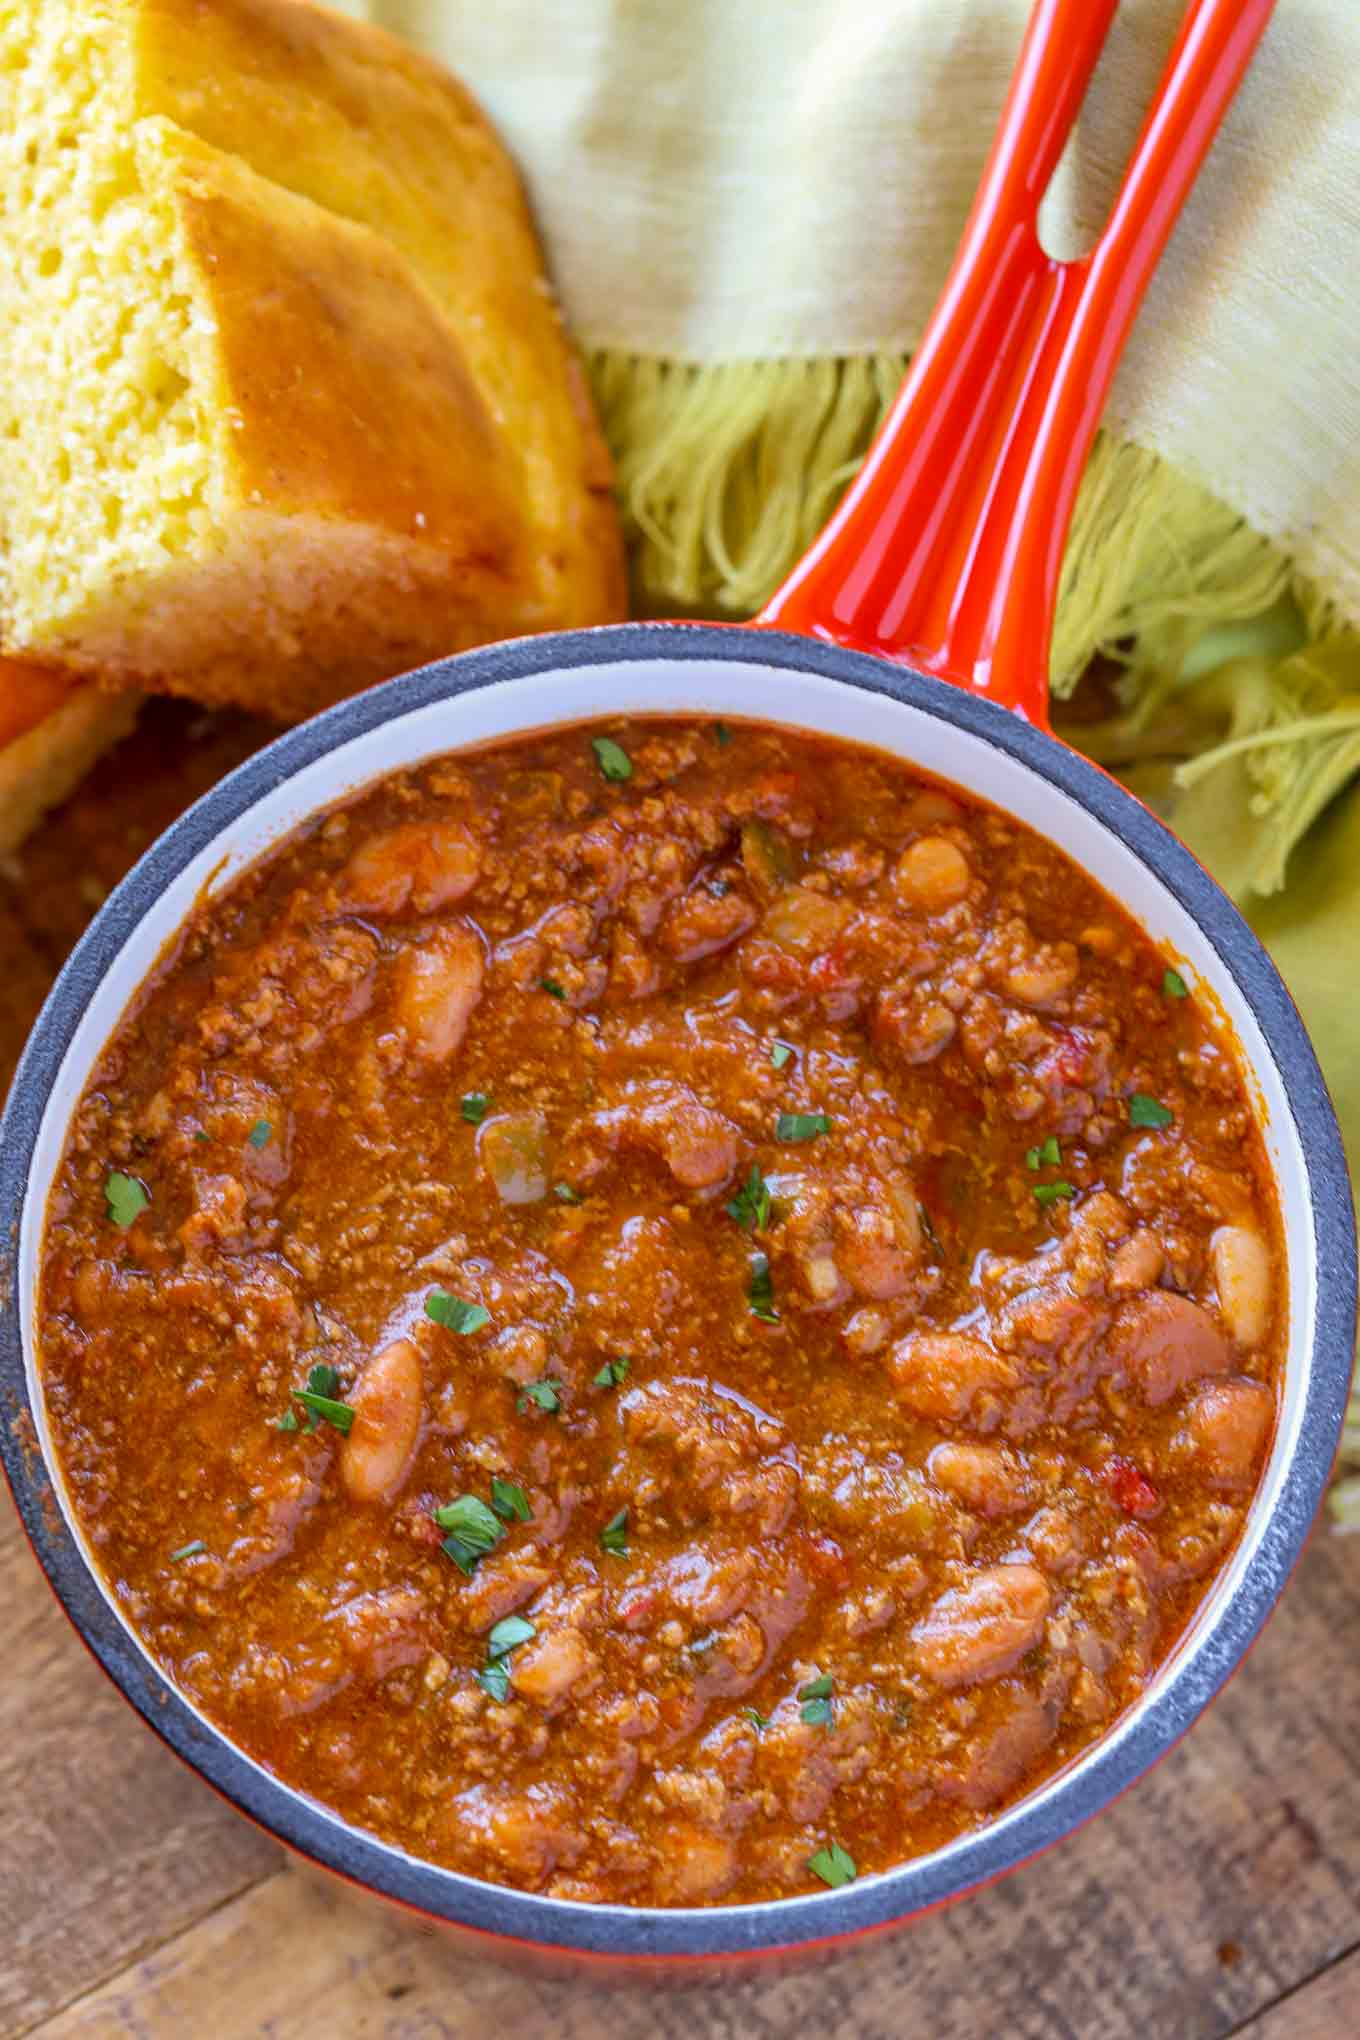 Easy Turkey Chili Cooking Made Healthy